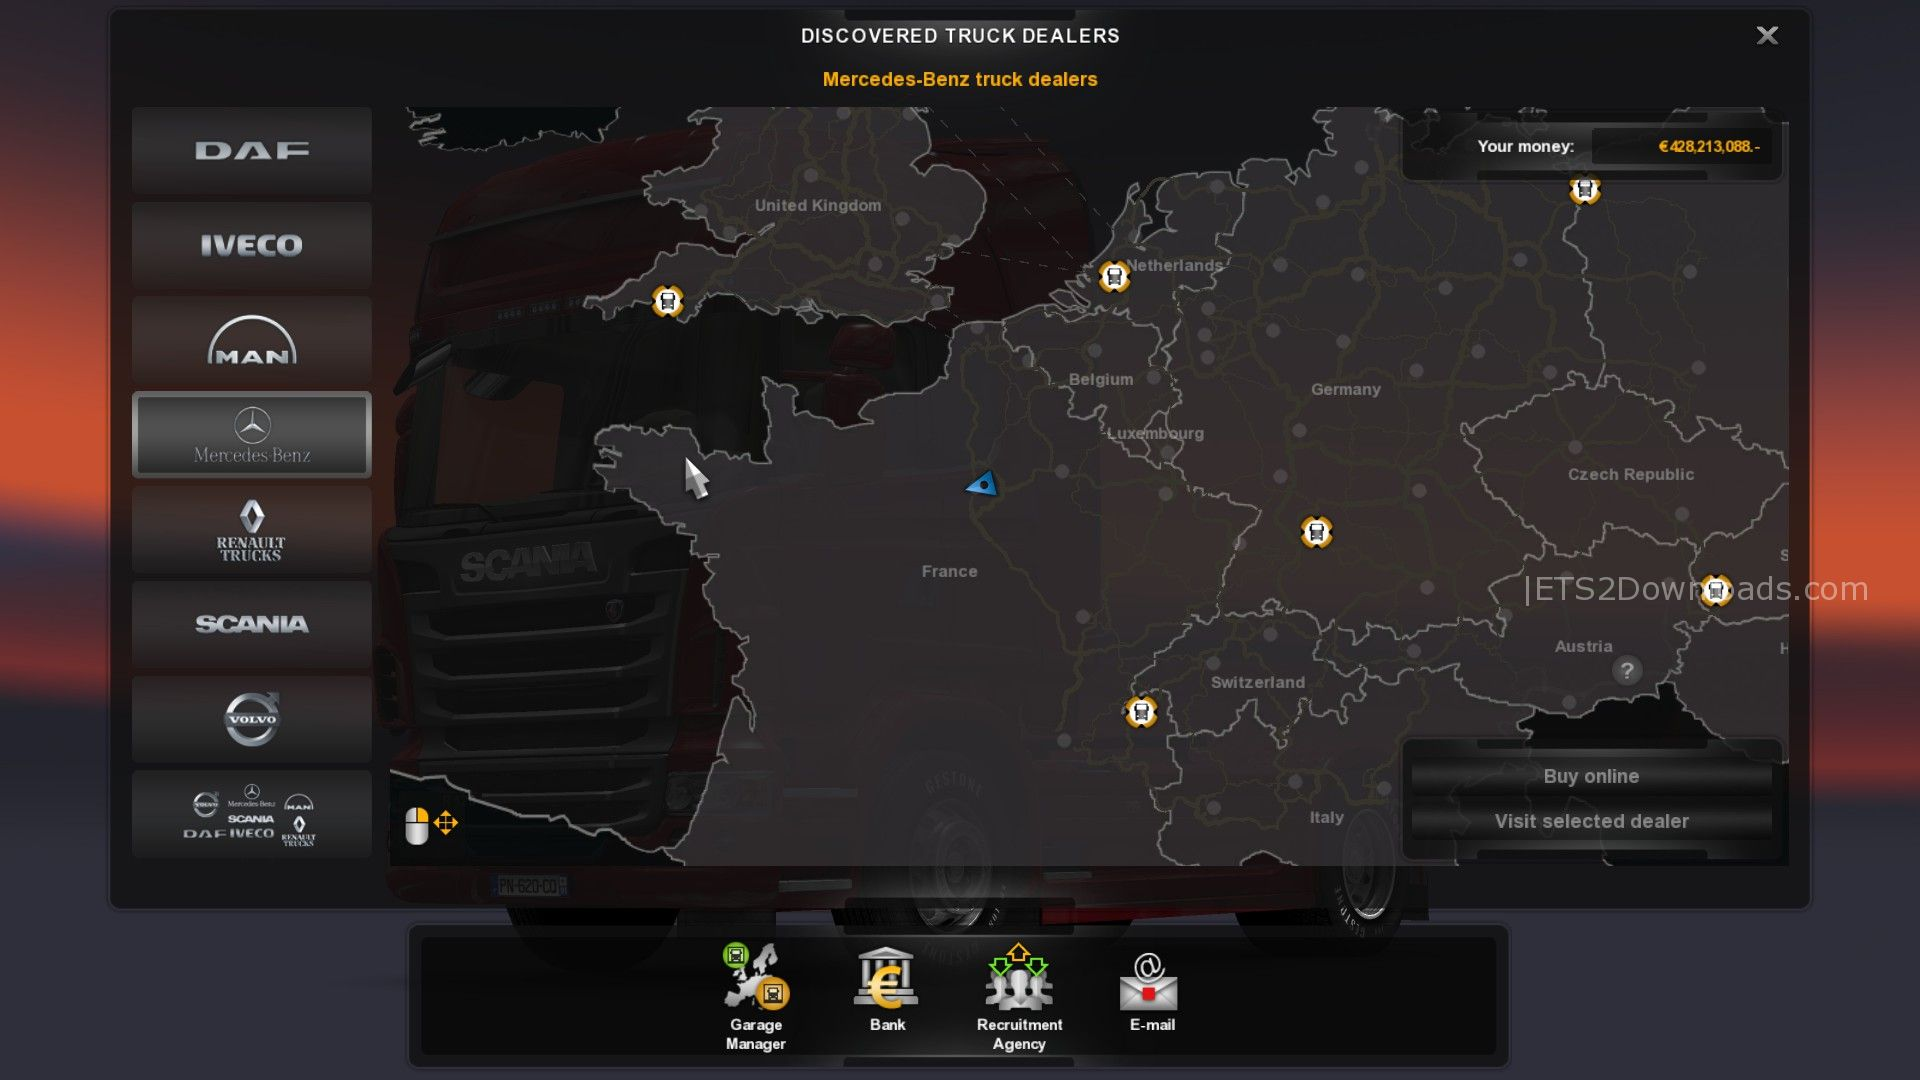 Euro truck simulator 2 update with mercedes benz for Mercedes benz dealership locations